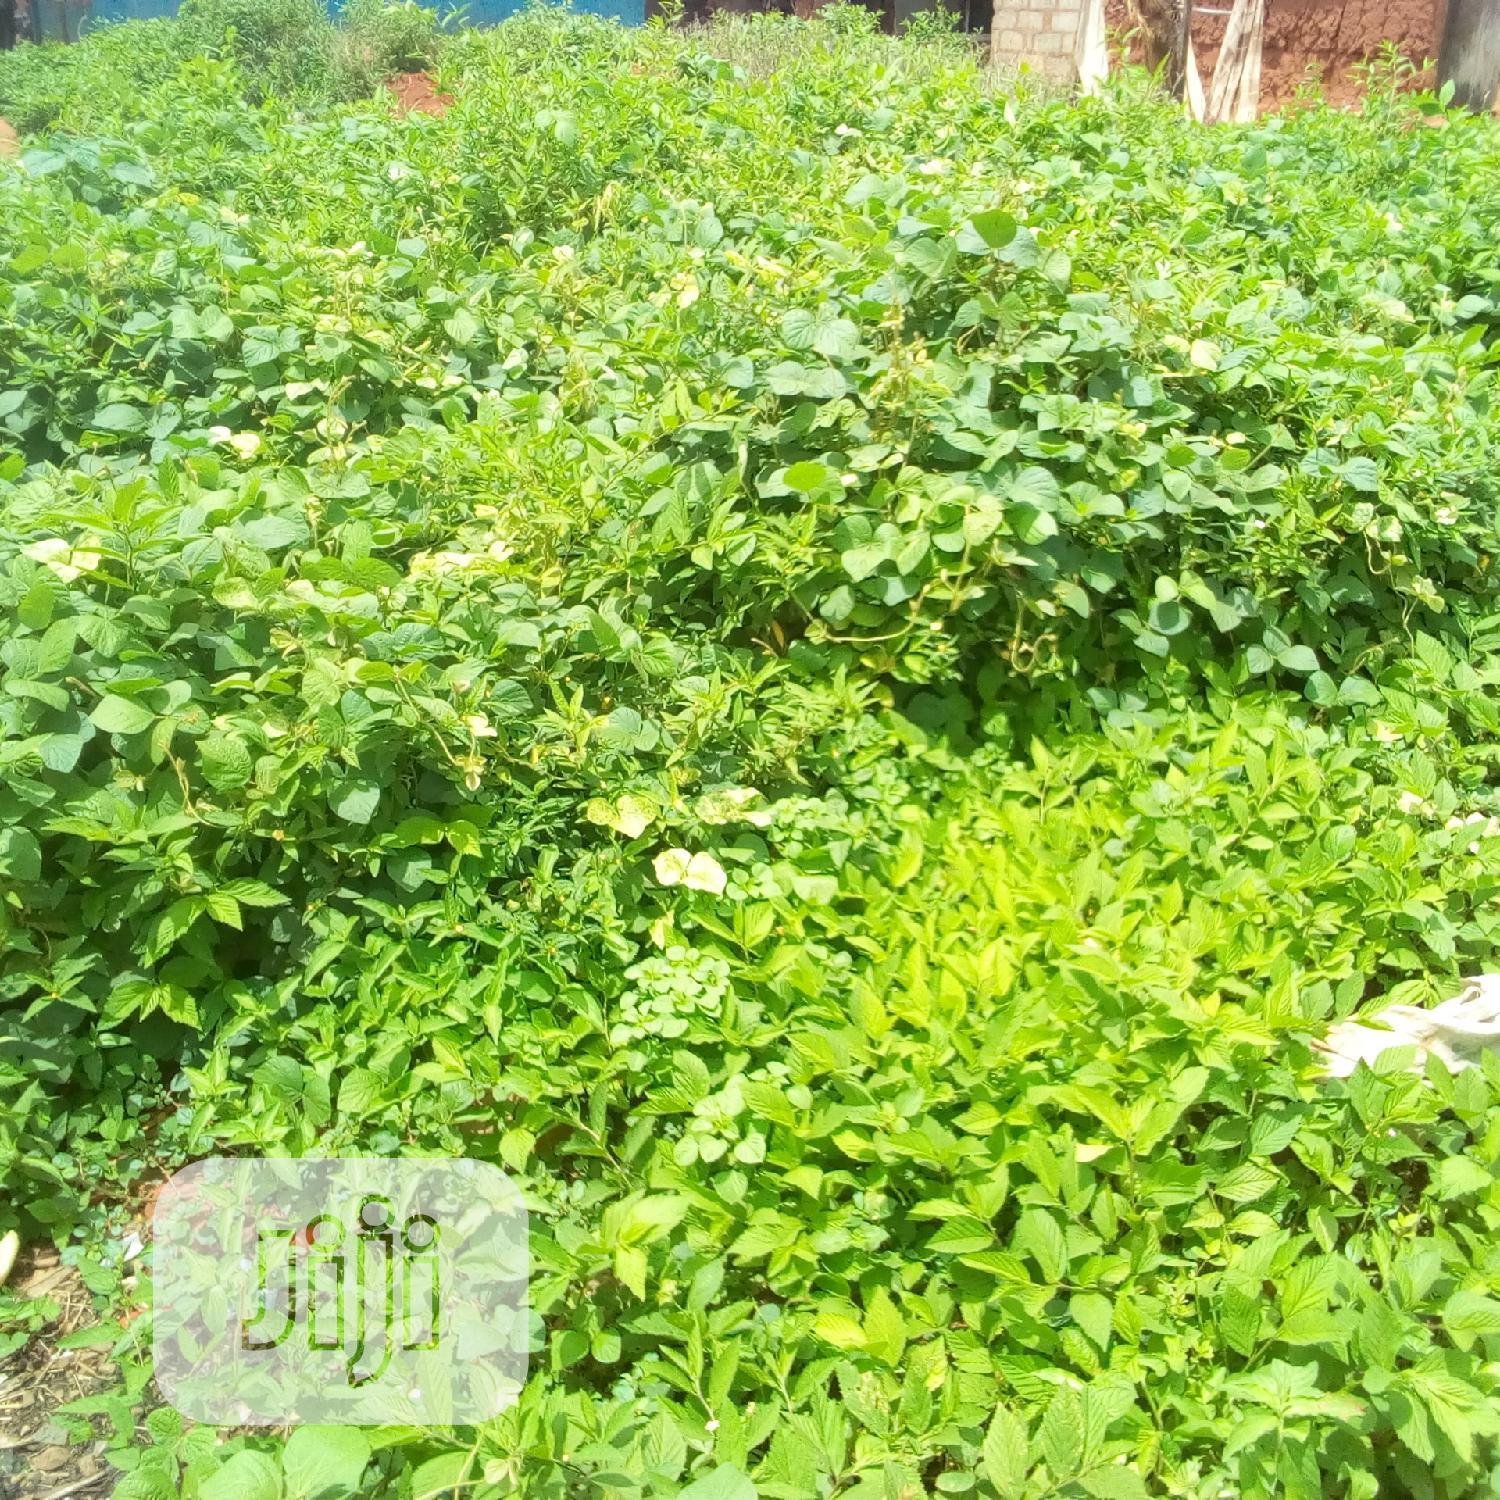 Rensidential Land 120/60 For Sale | Land & Plots For Sale for sale in Okitipupa, Ondo State, Nigeria